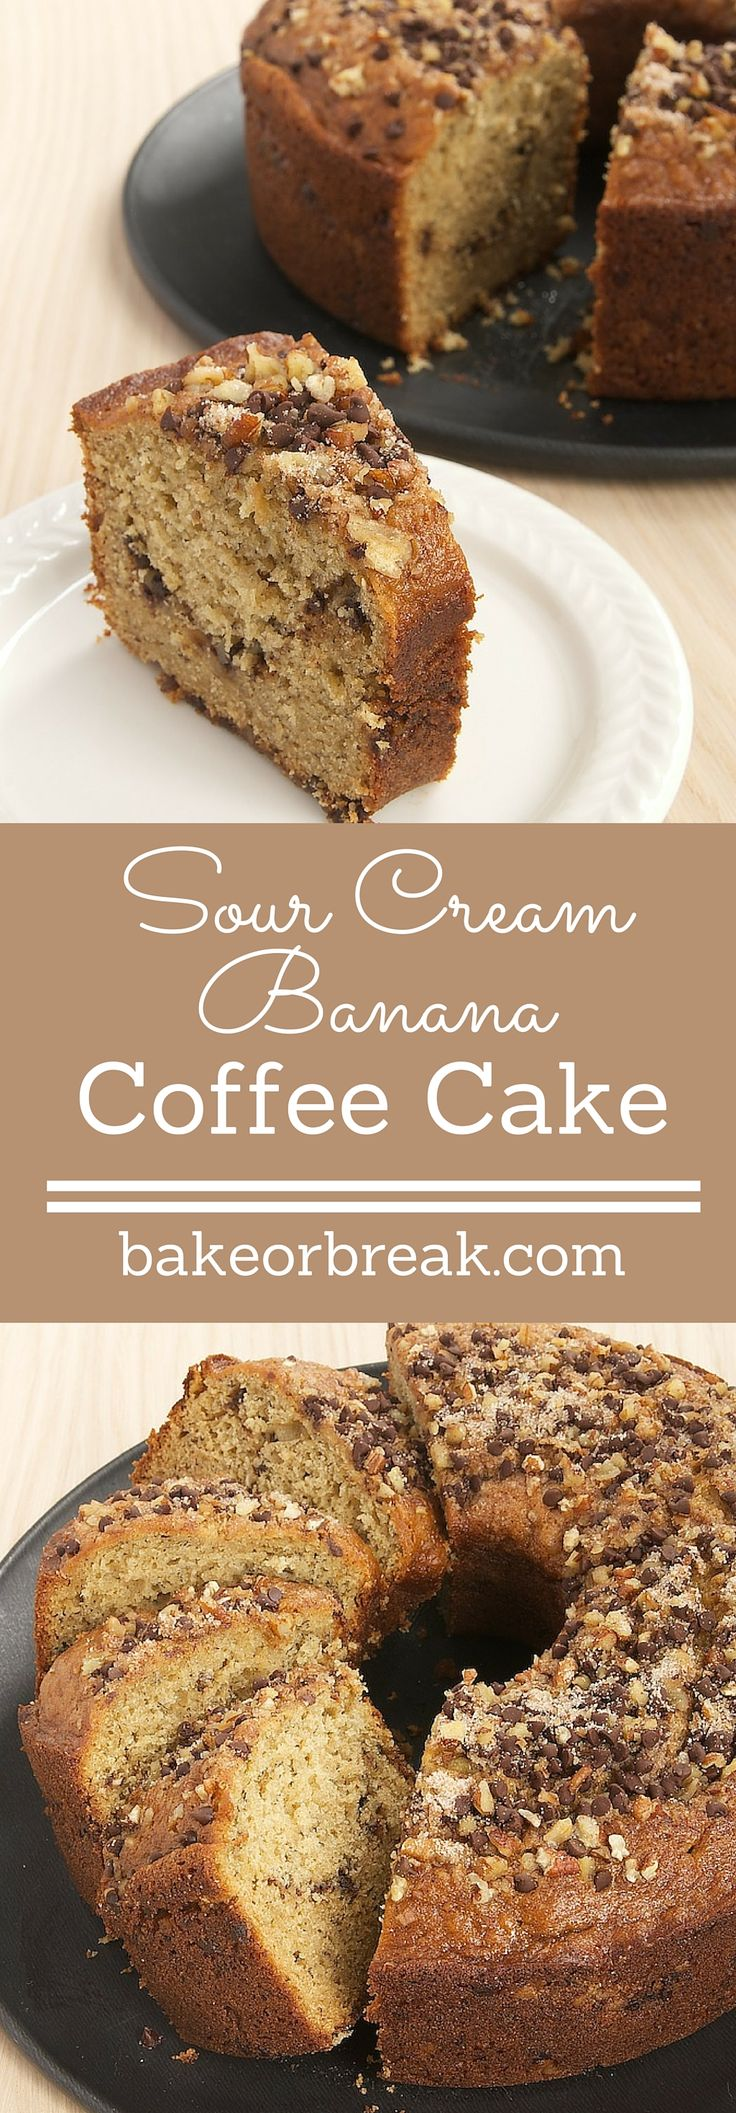 Sour Cream Banana Coffee Cake is a delicious and delicate banana cake with a swirl of chocolate, nuts, and cinnamon. - Bake or Break ~ http://www.bakeorbreak.com